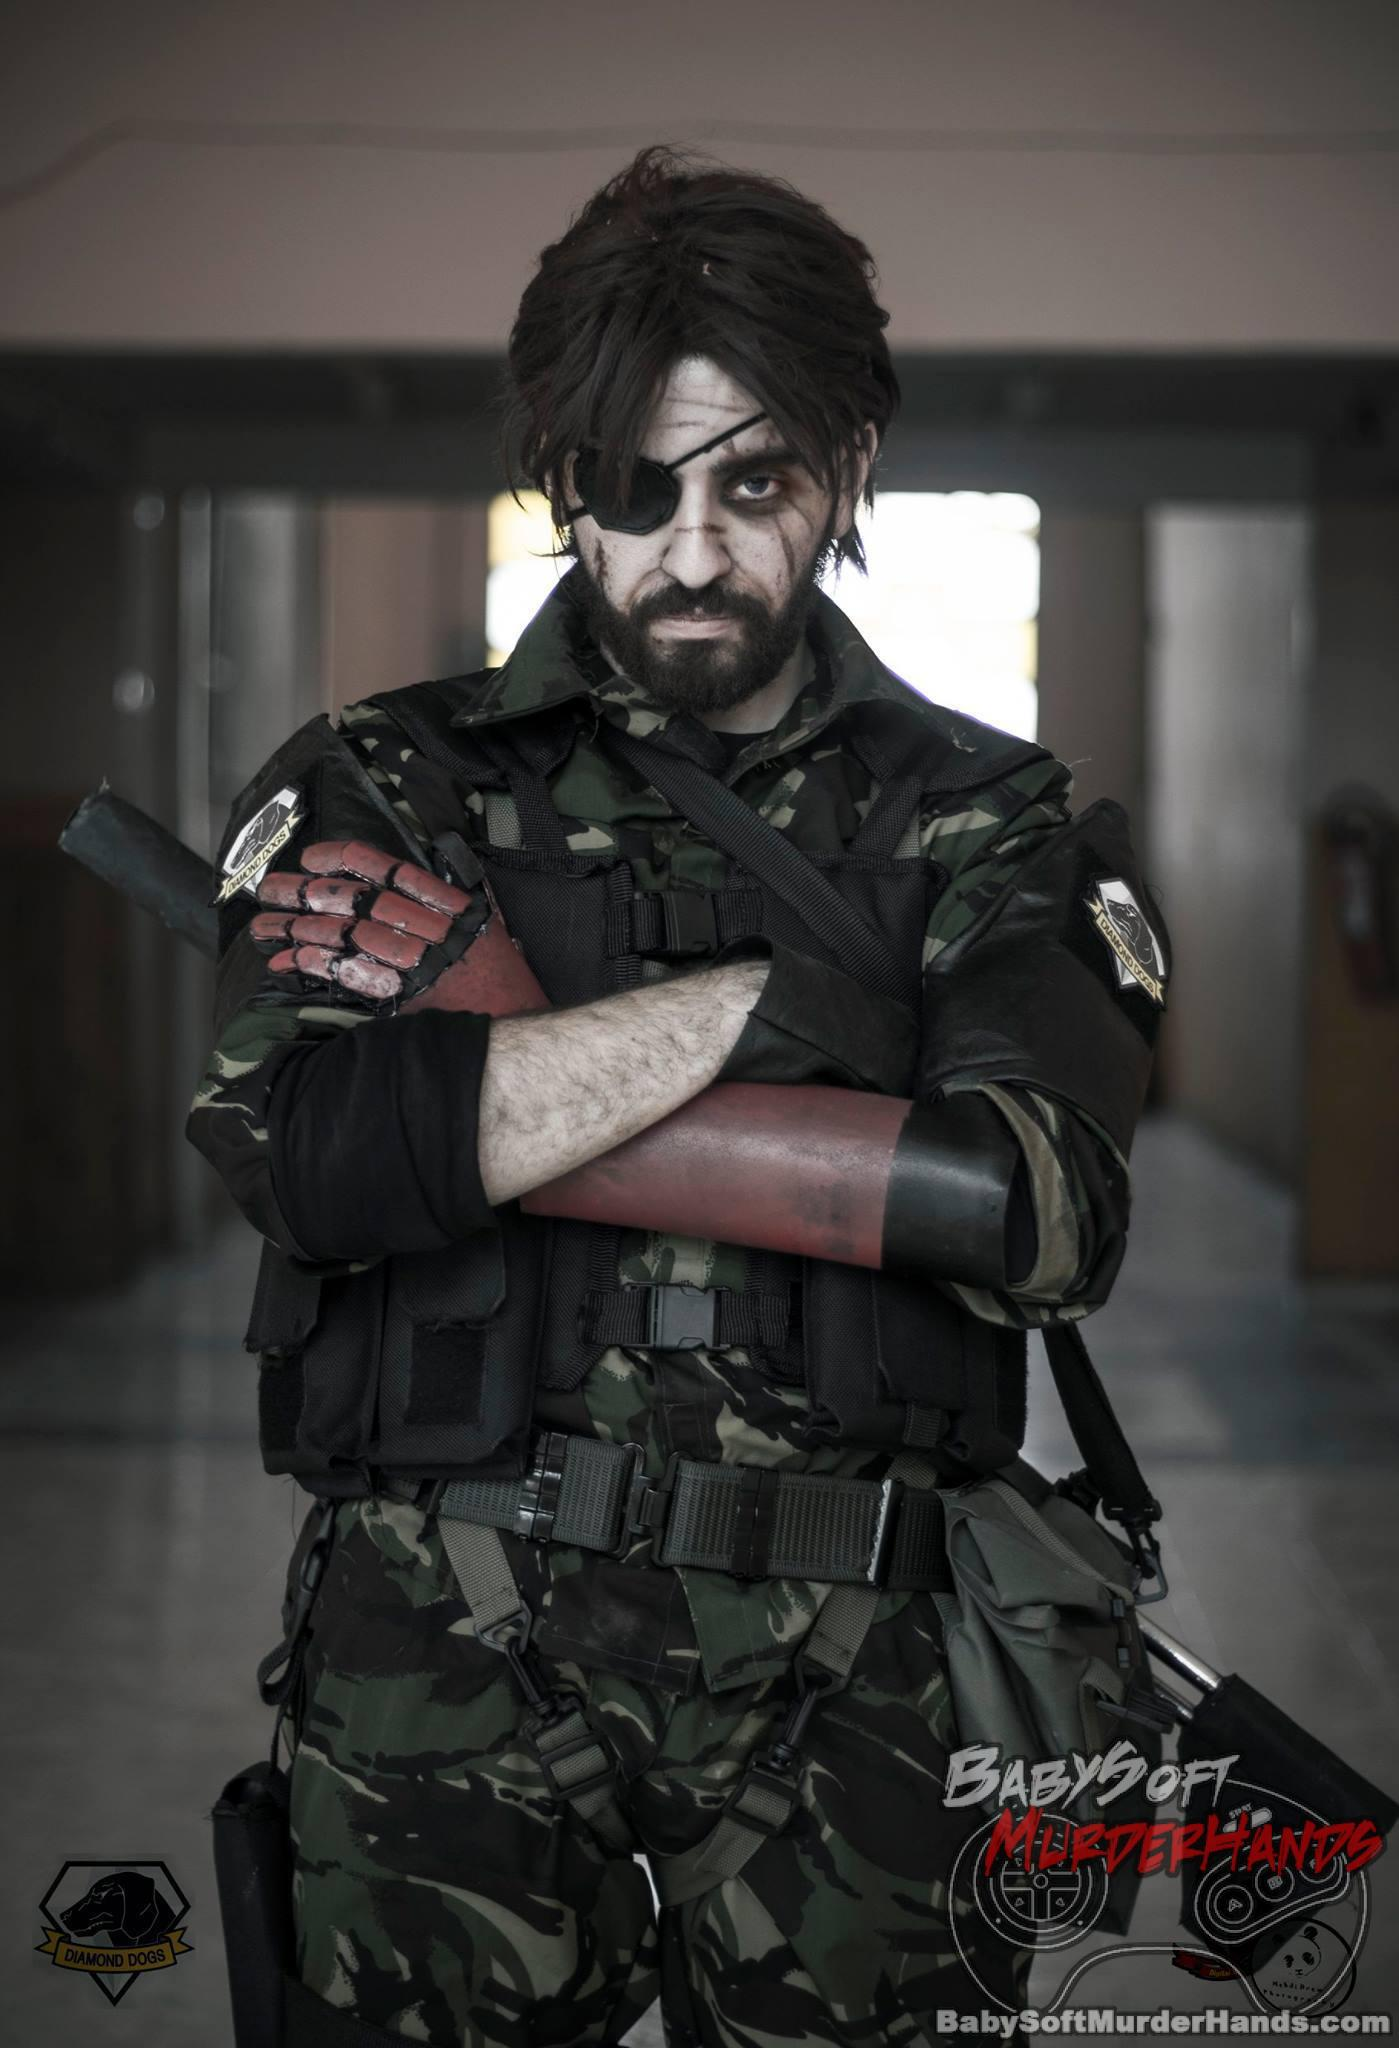 Venom Snake from Metal Gear Solid V : The Phantom Pain cosplay by Adel Benyahia (Beretta )